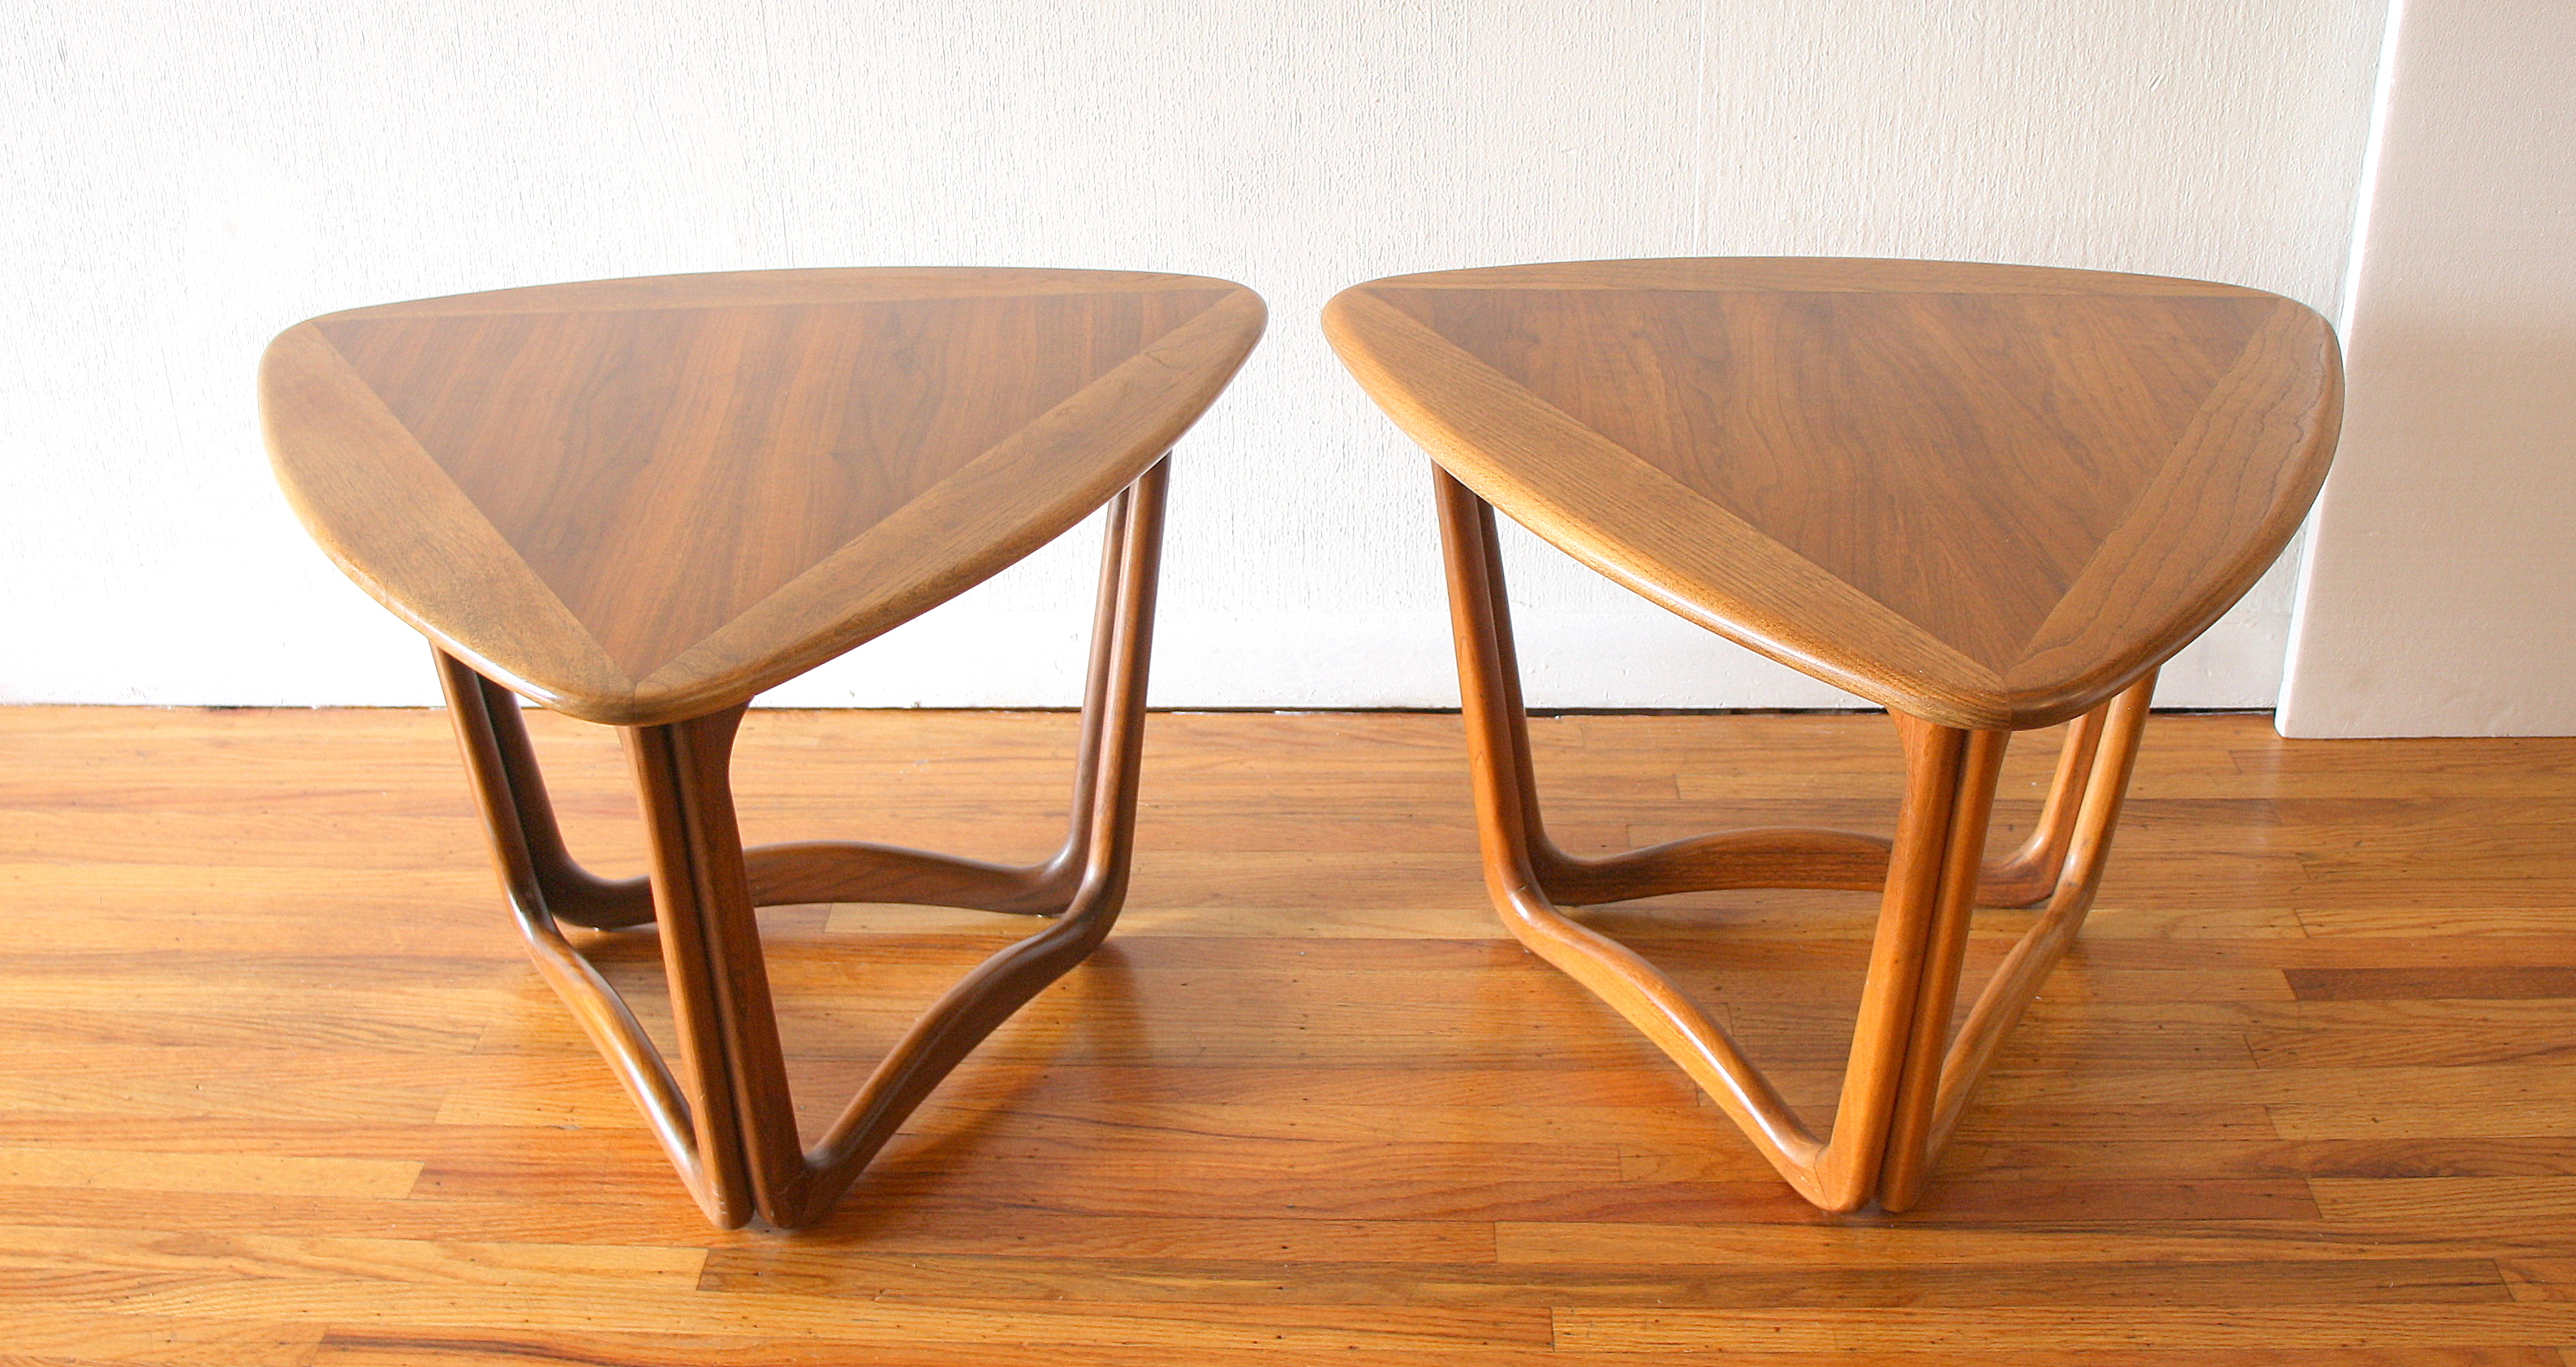 Pair of Lane triangle guitar pic side end tables 1.JPG